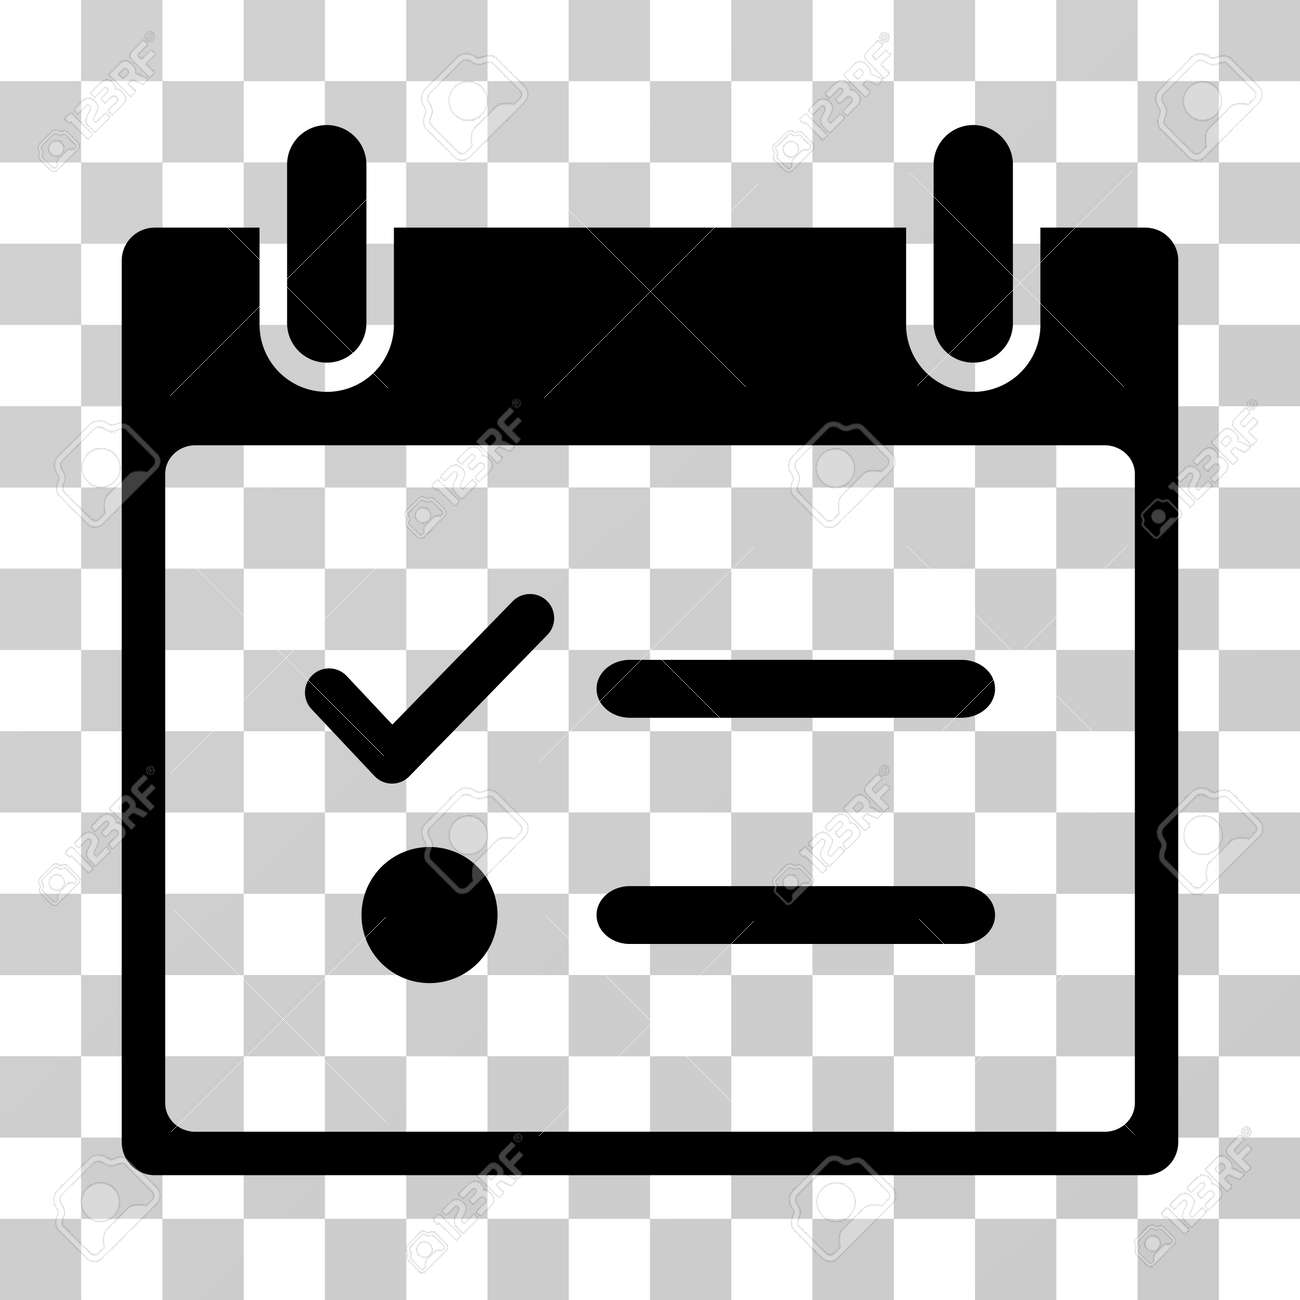 todo list calendar day icon vector illustration style is flat iconic symbol black color